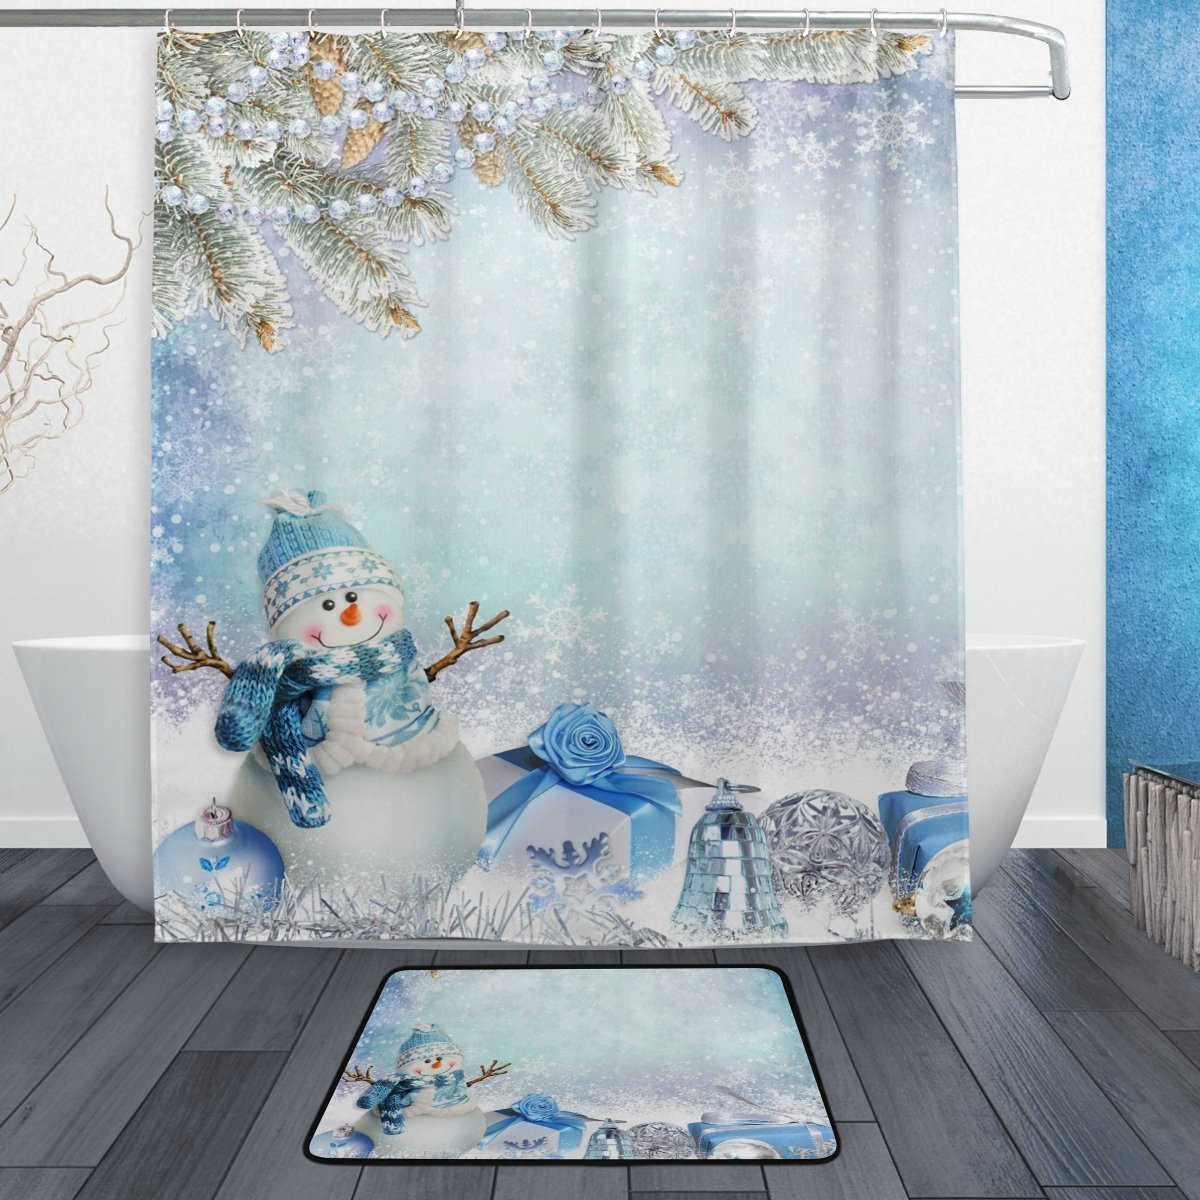 Us 16 55 31 Off Winter Snowflake Shower Curtain And Mat Set Christmas Snowman Pine Tree Branches Gifts Waterproof Fabric Bathroom Curtain In Shower